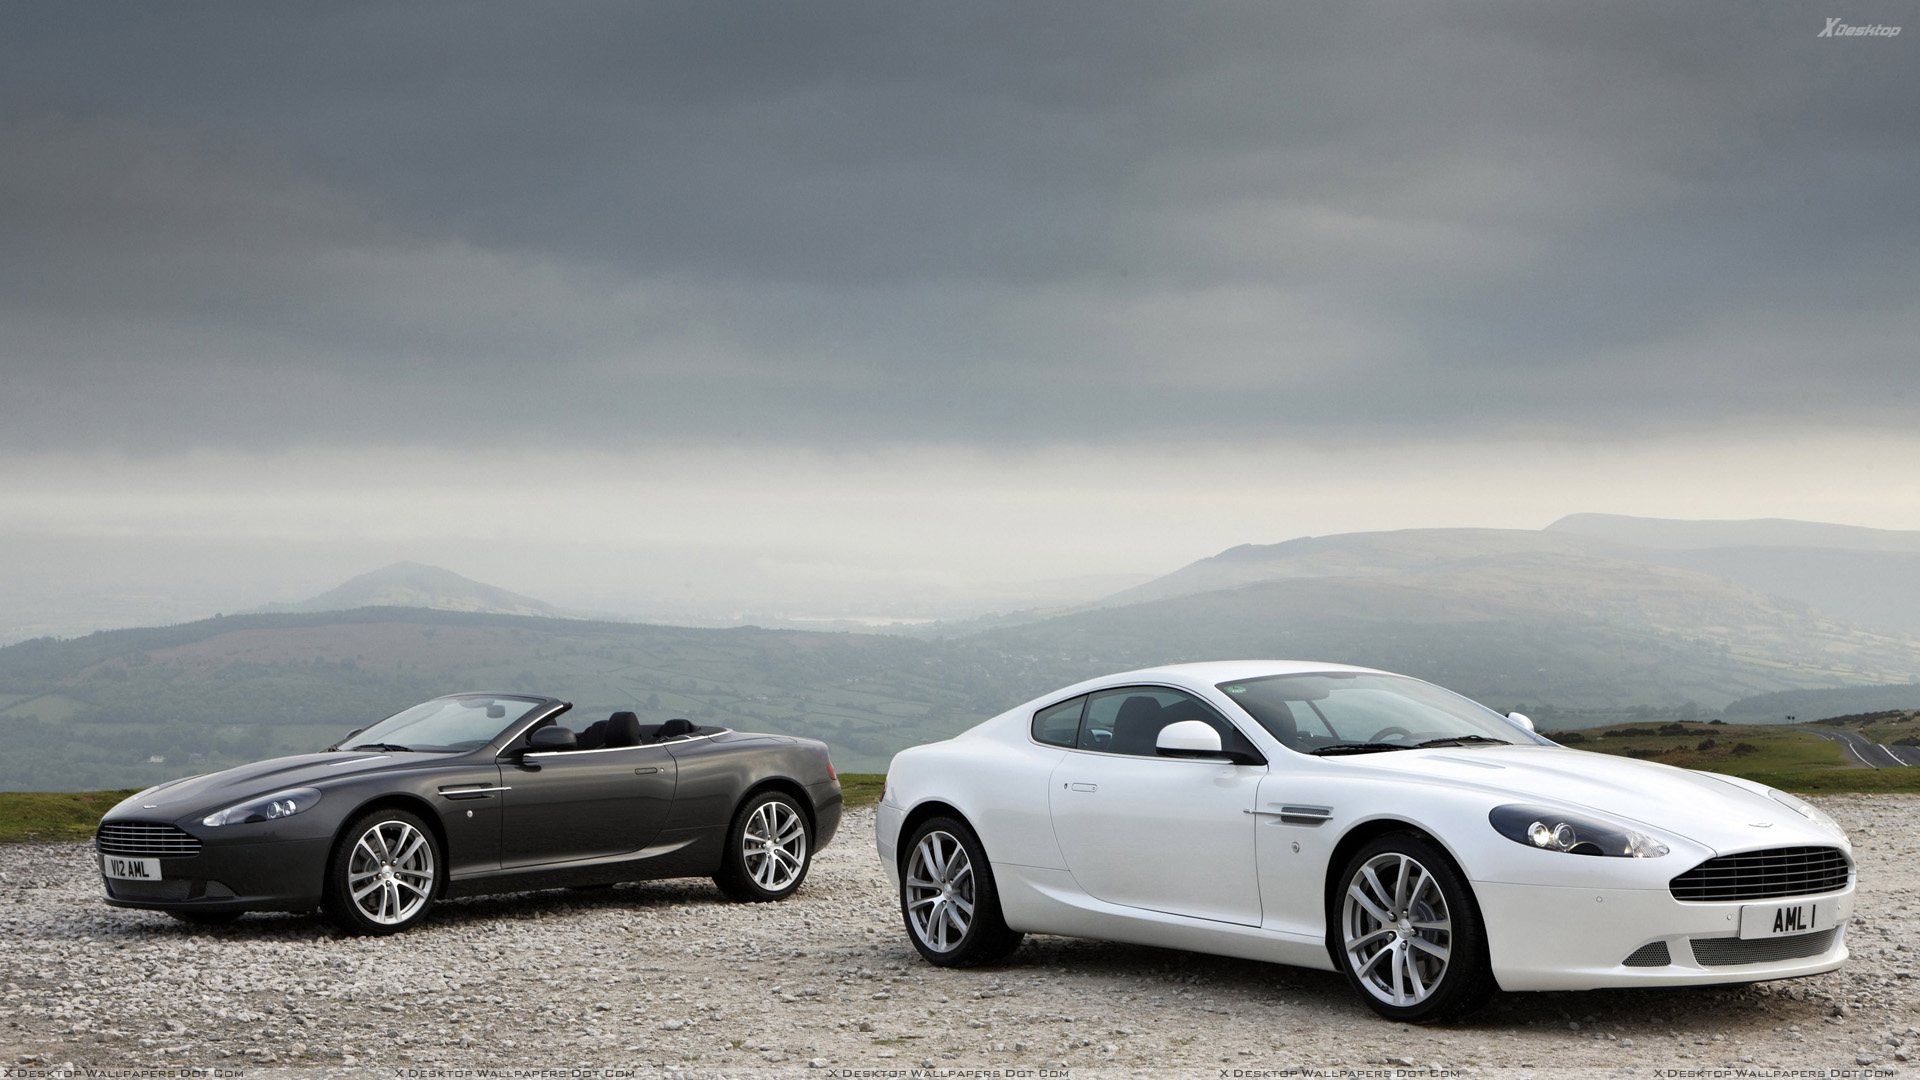 2010 Aston Martin Db9 Black Vs White Near Mountains Wallpaper